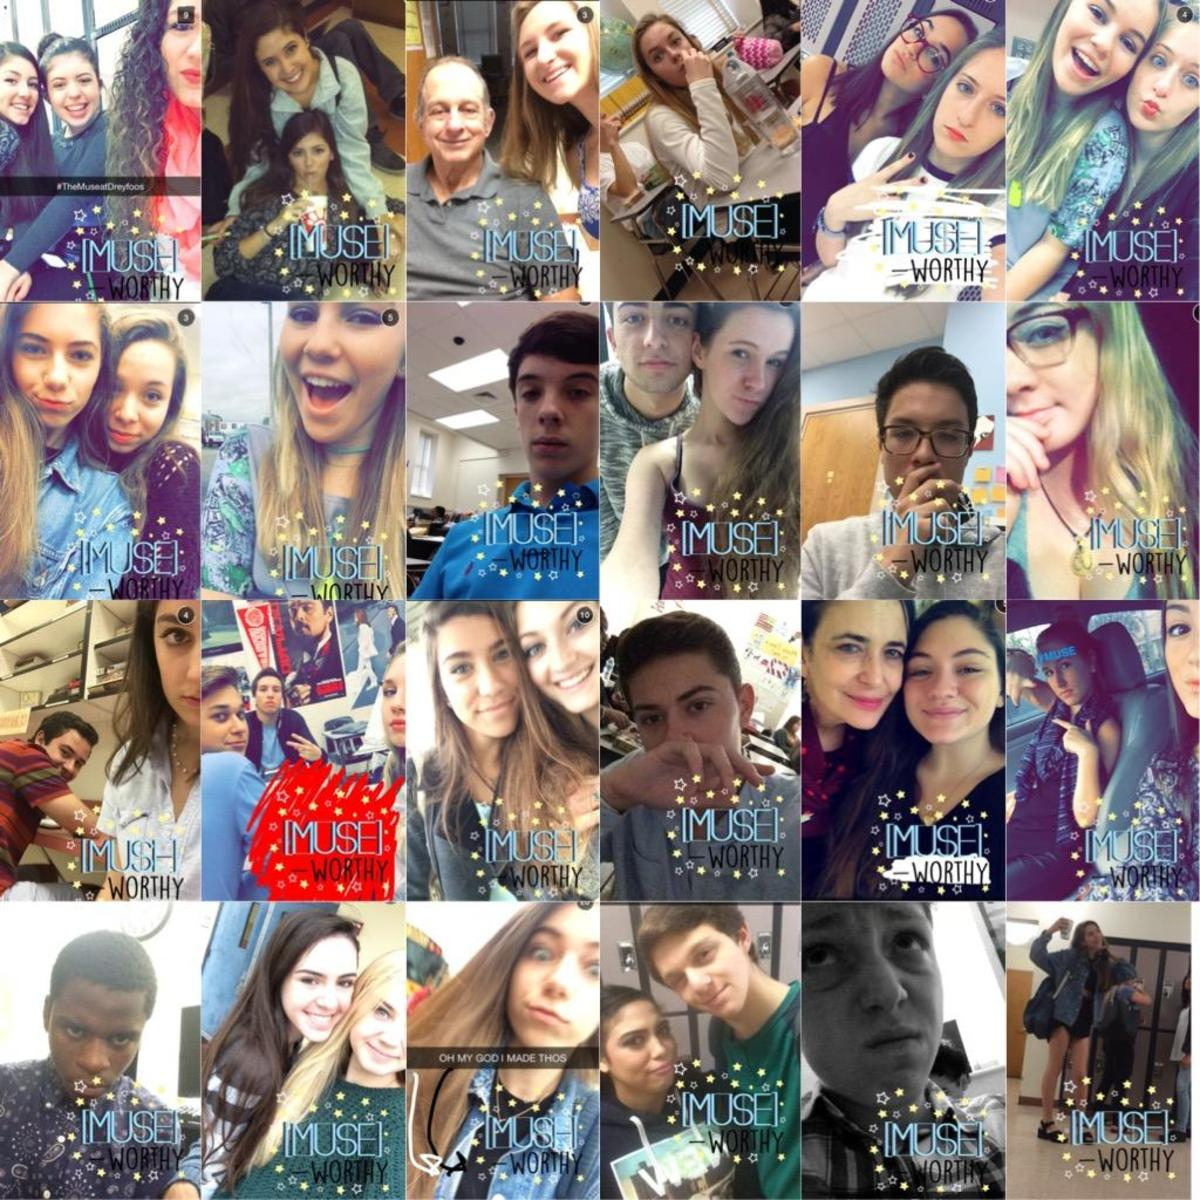 A collage of snaps made public by students featuring the new filter.